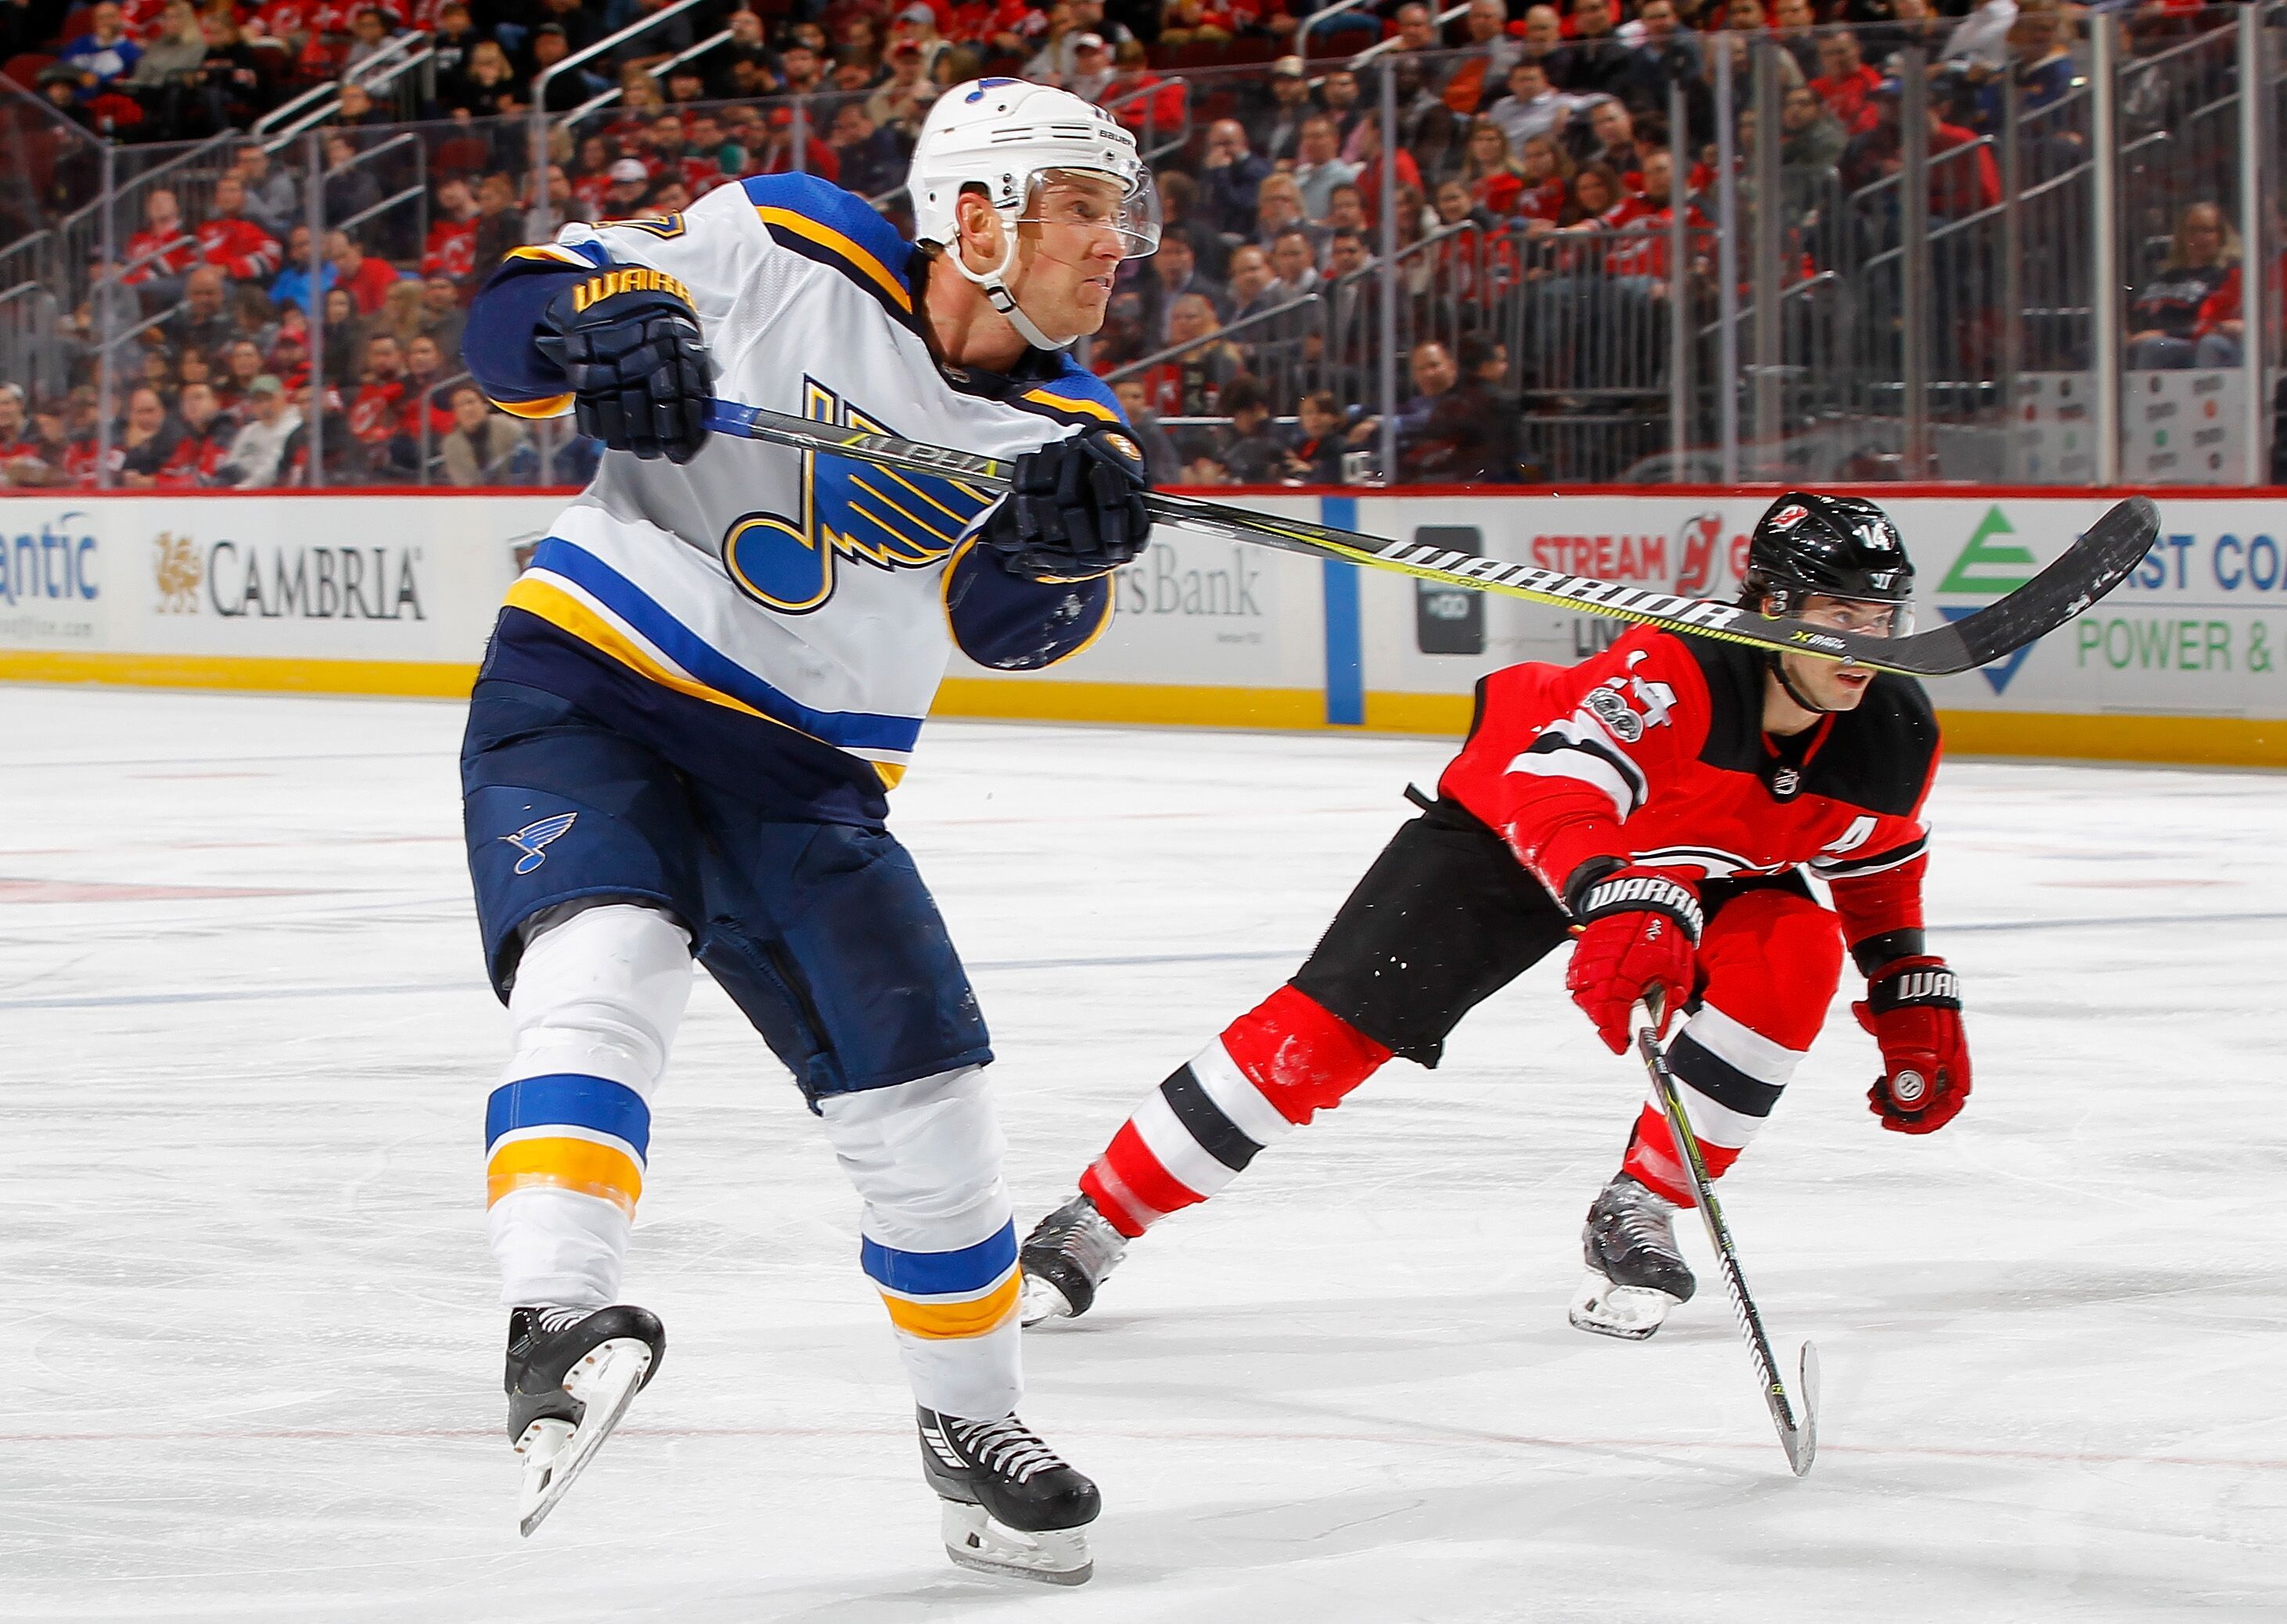 873788598-st-louis-blues-v-new-jersey-devils.jpg